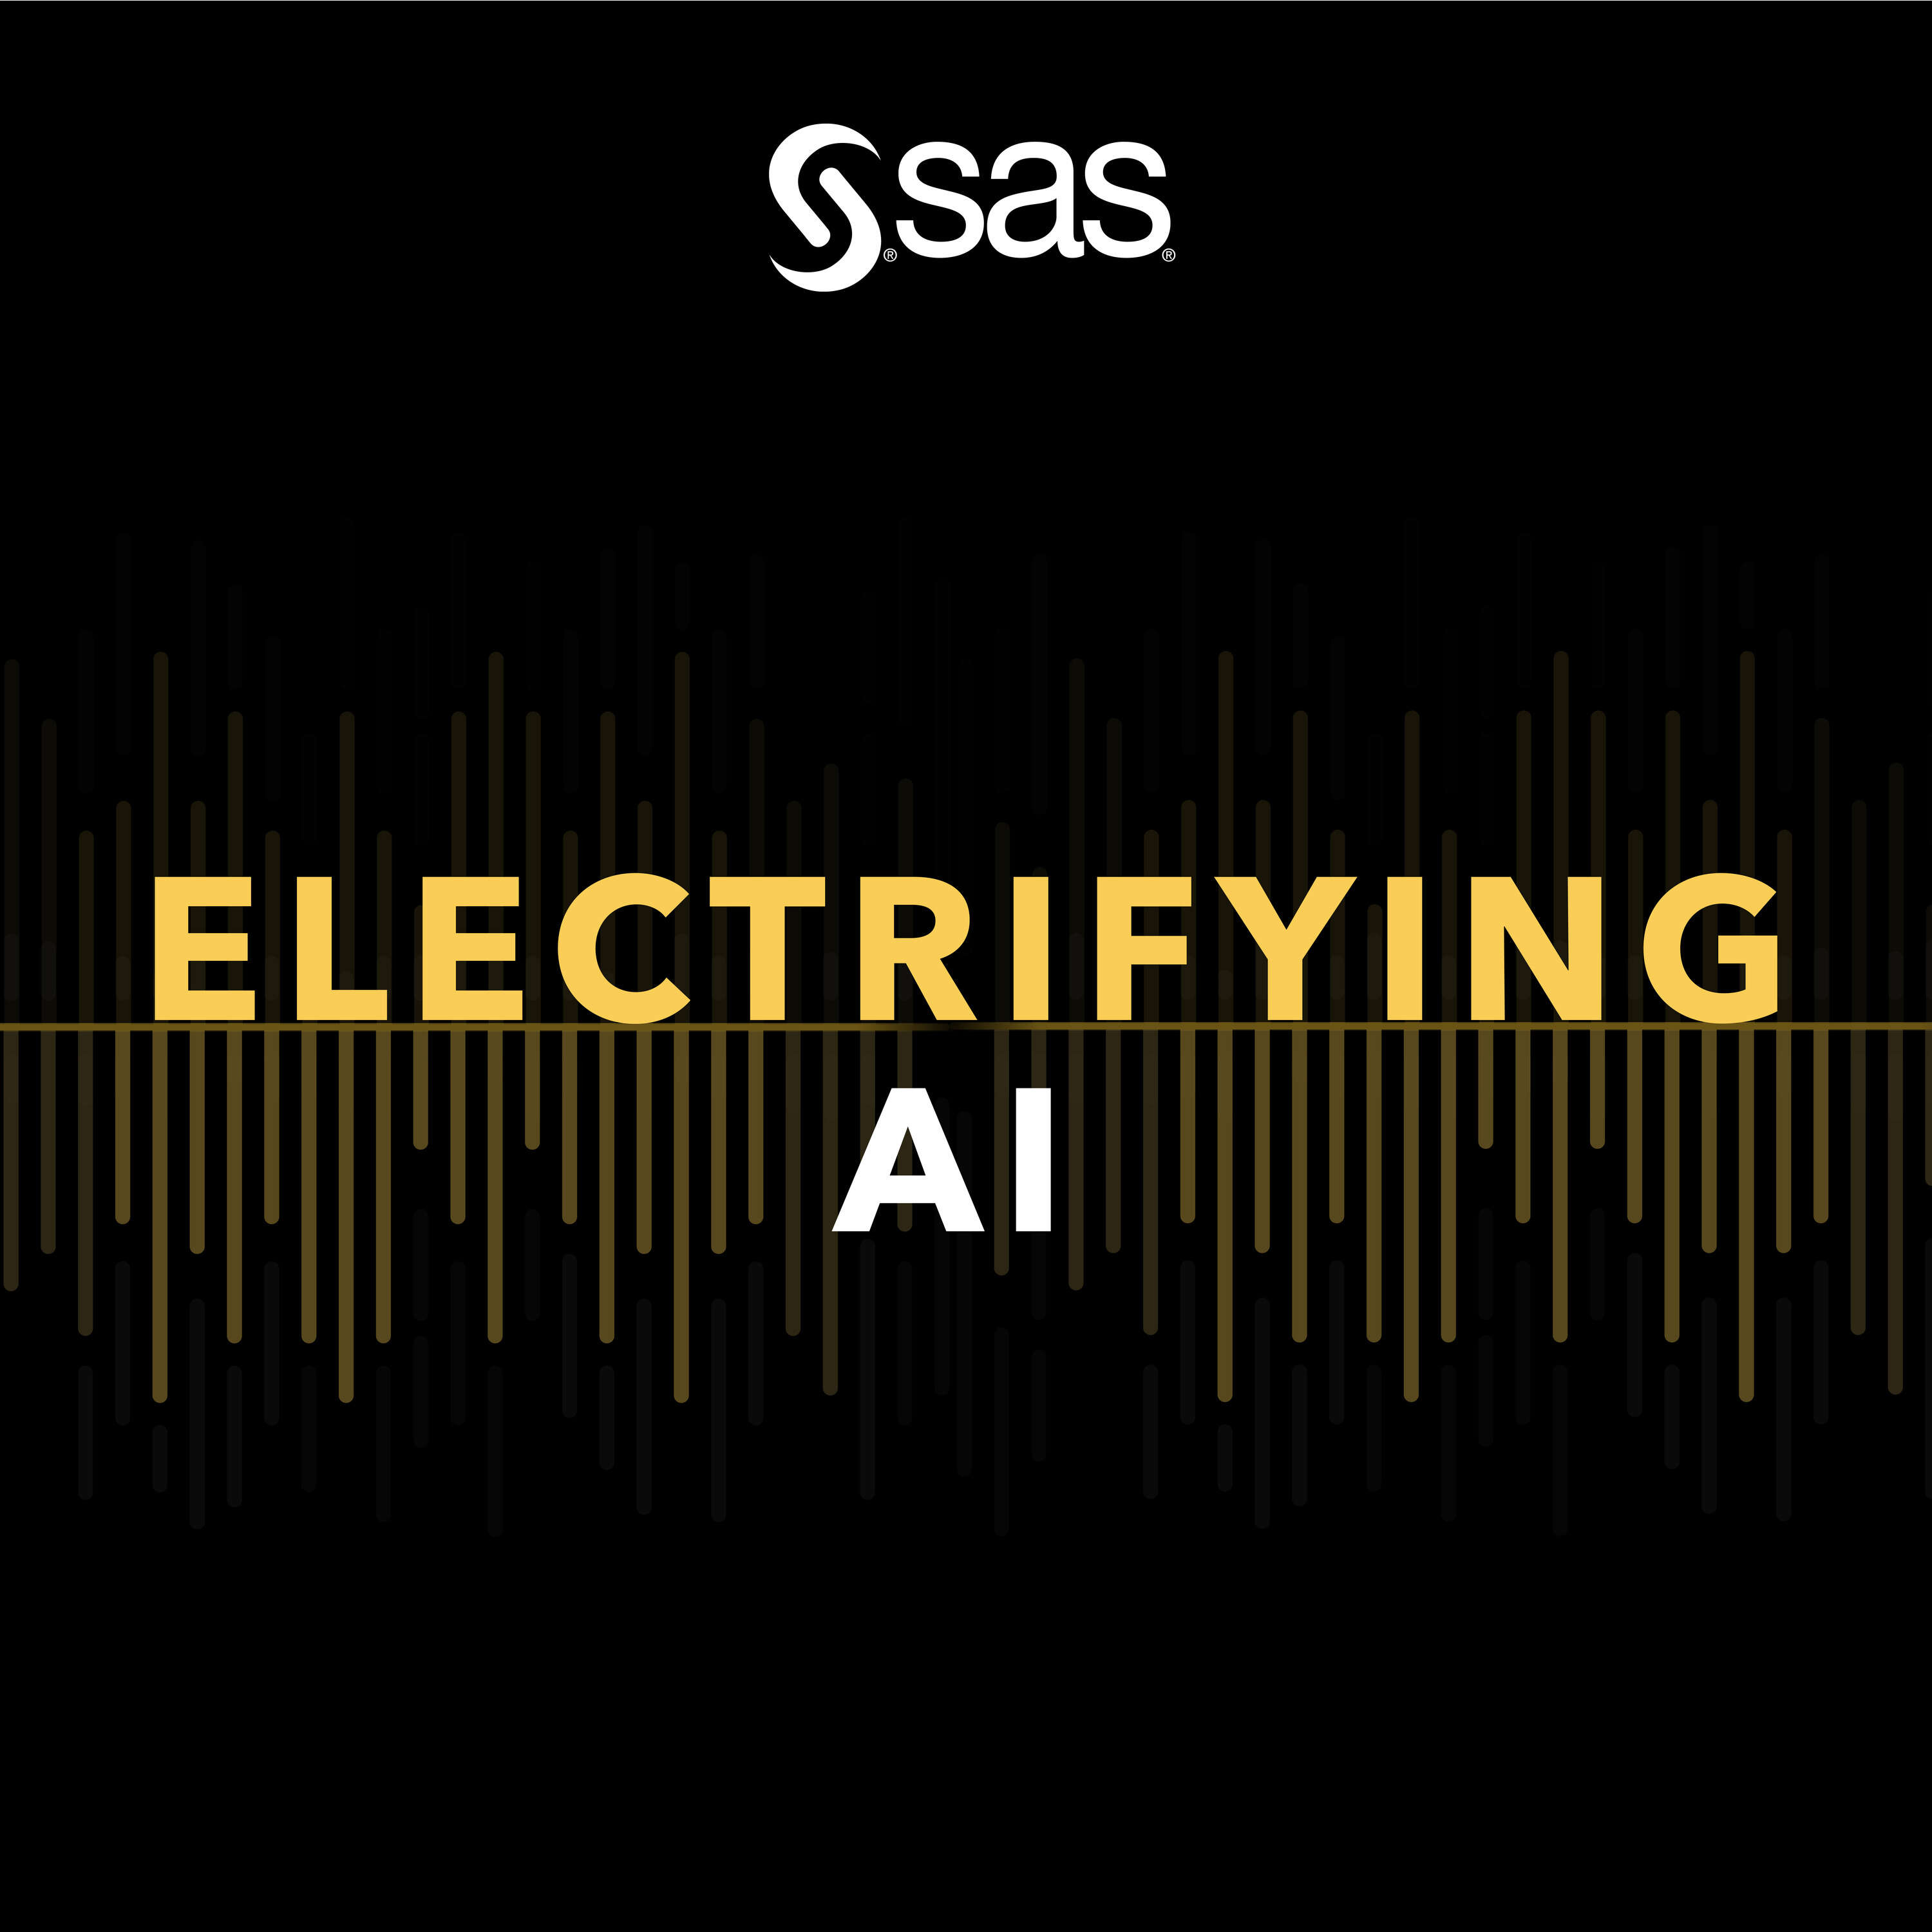 Electrifying AI: An even greater grid